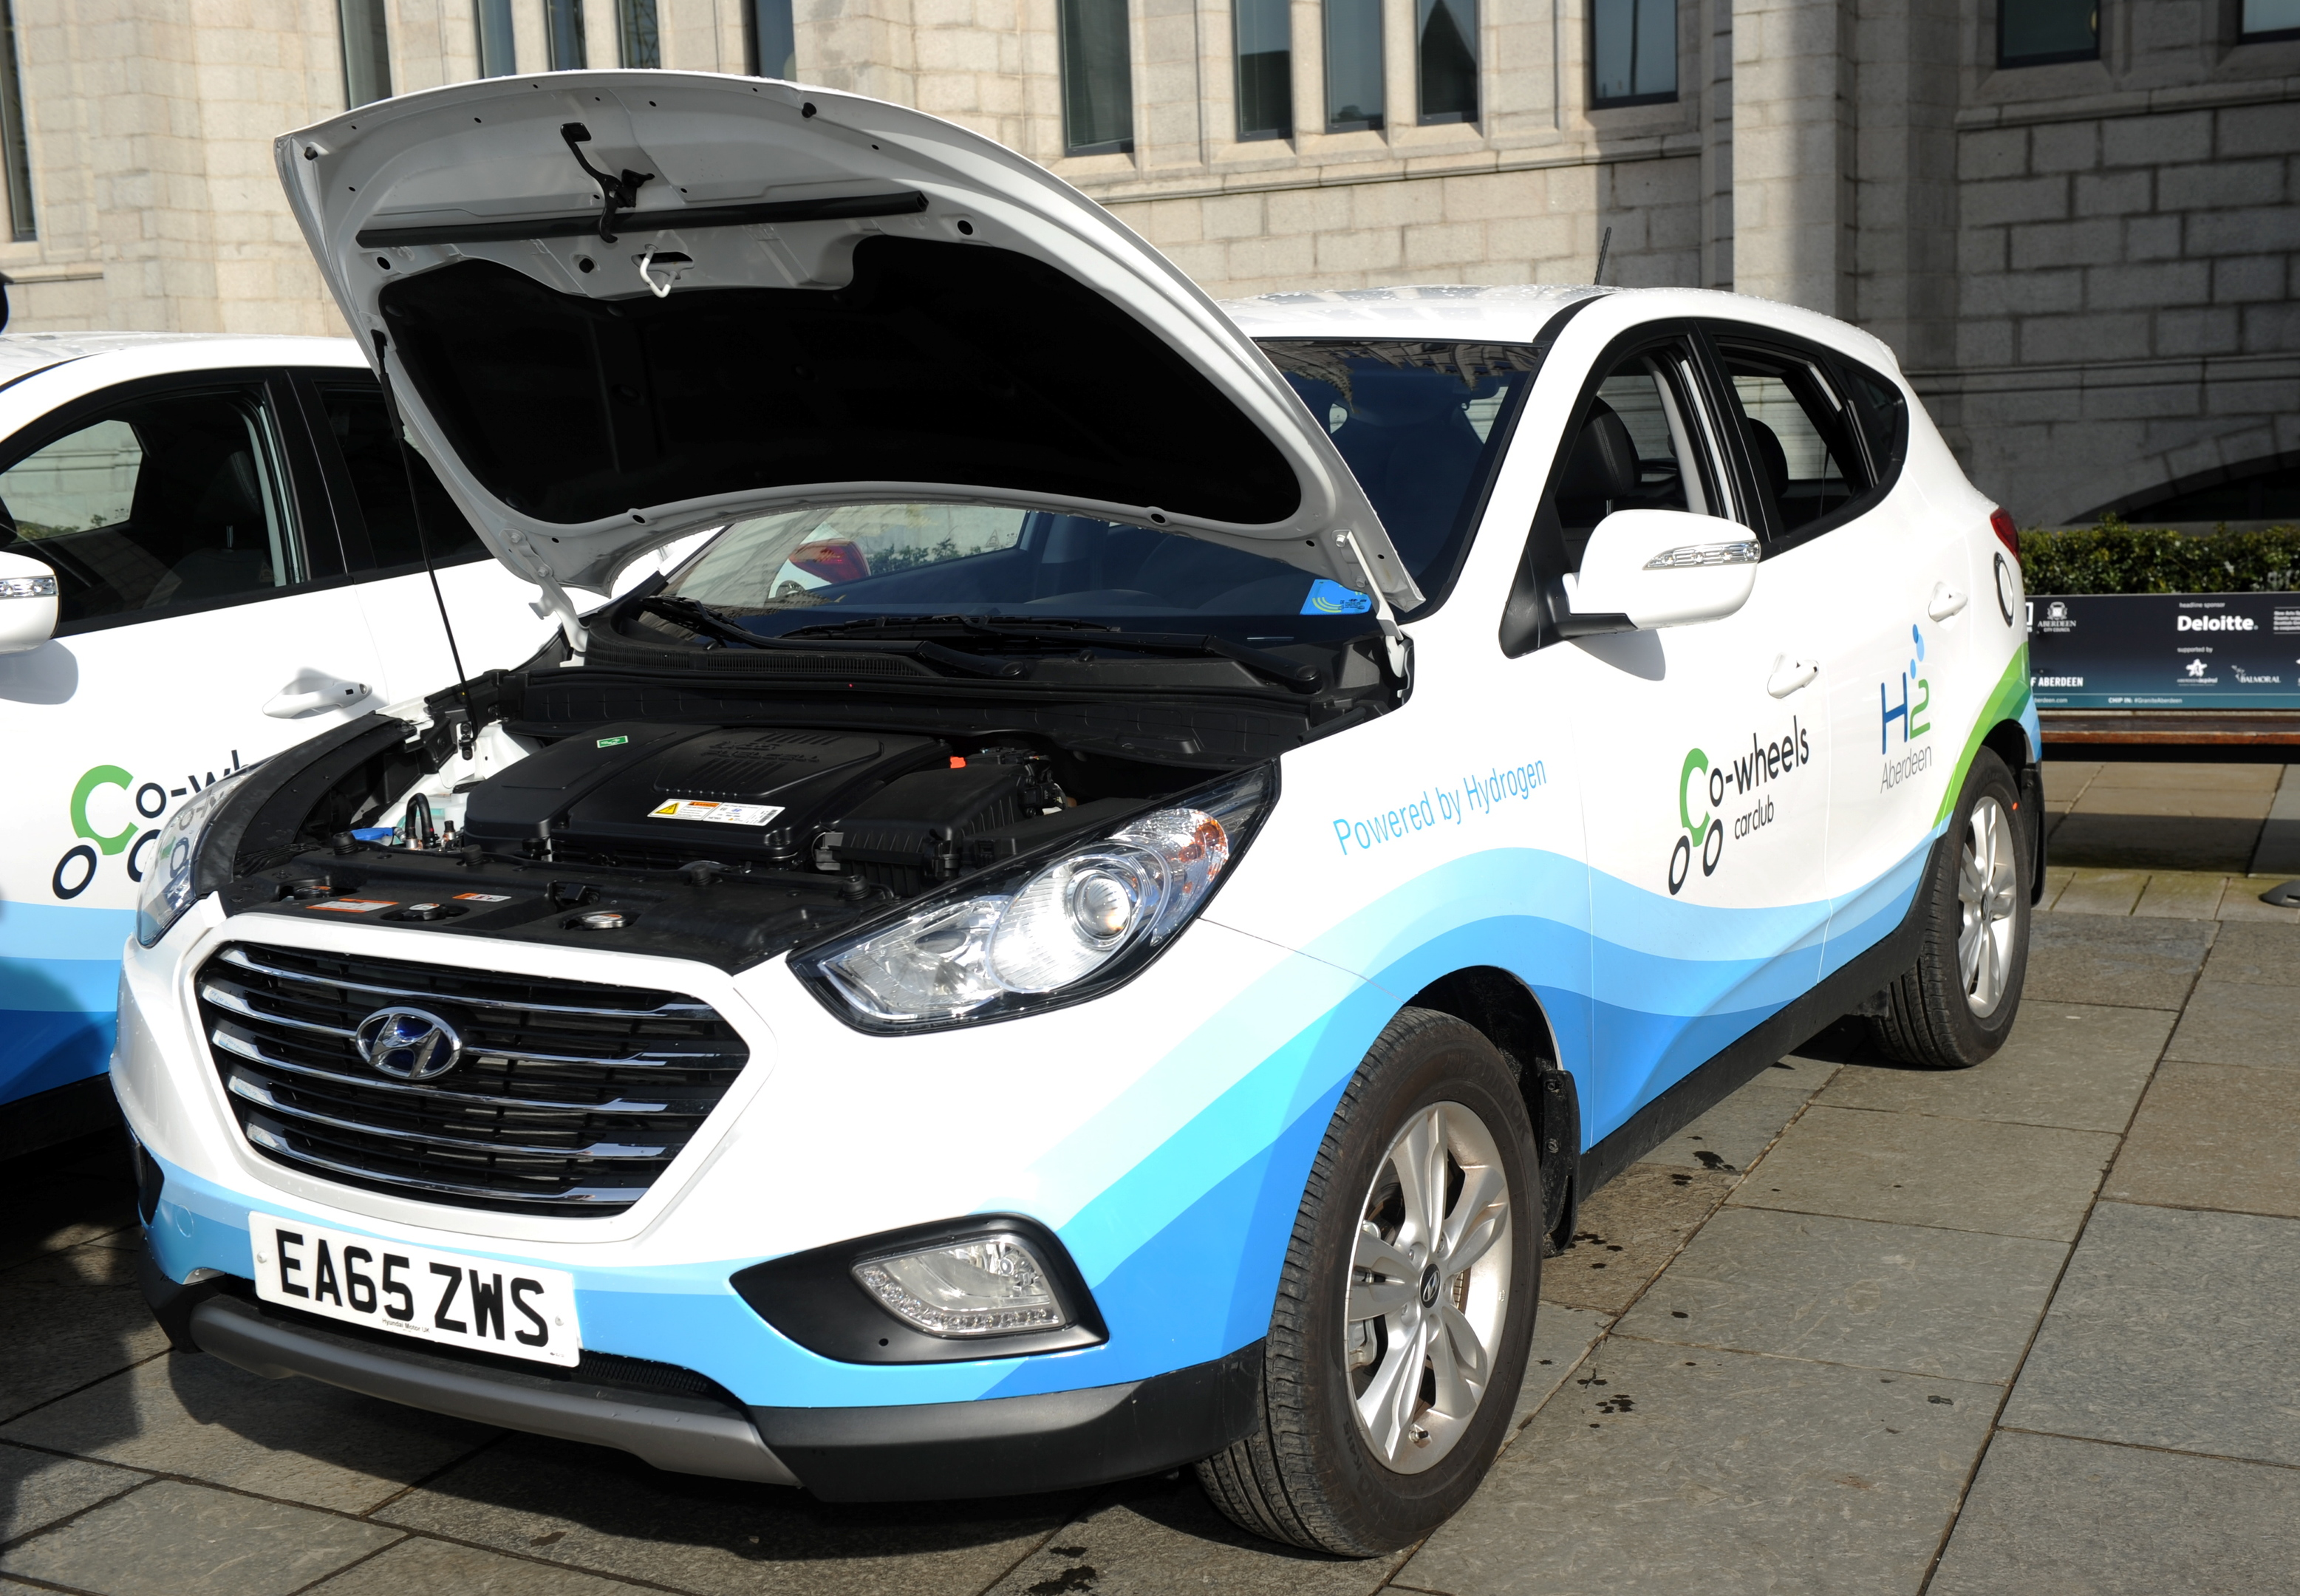 One of the hydrogen powered Hyundai ix35s.